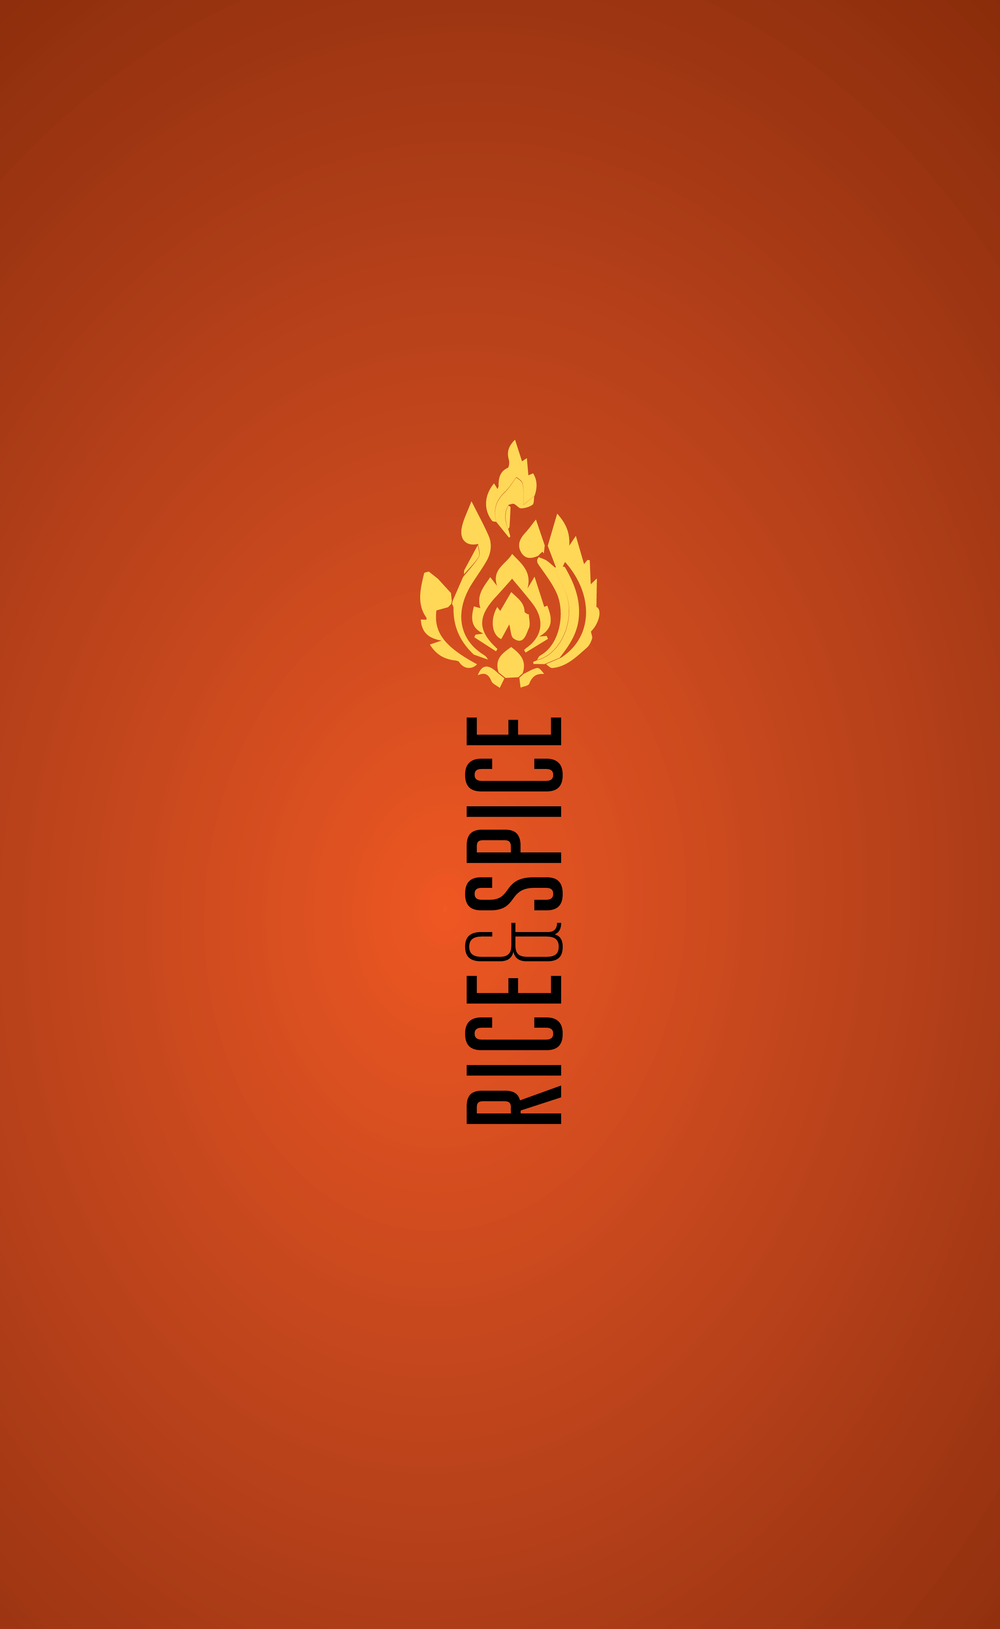 RiceAndSpice_Redesign.png